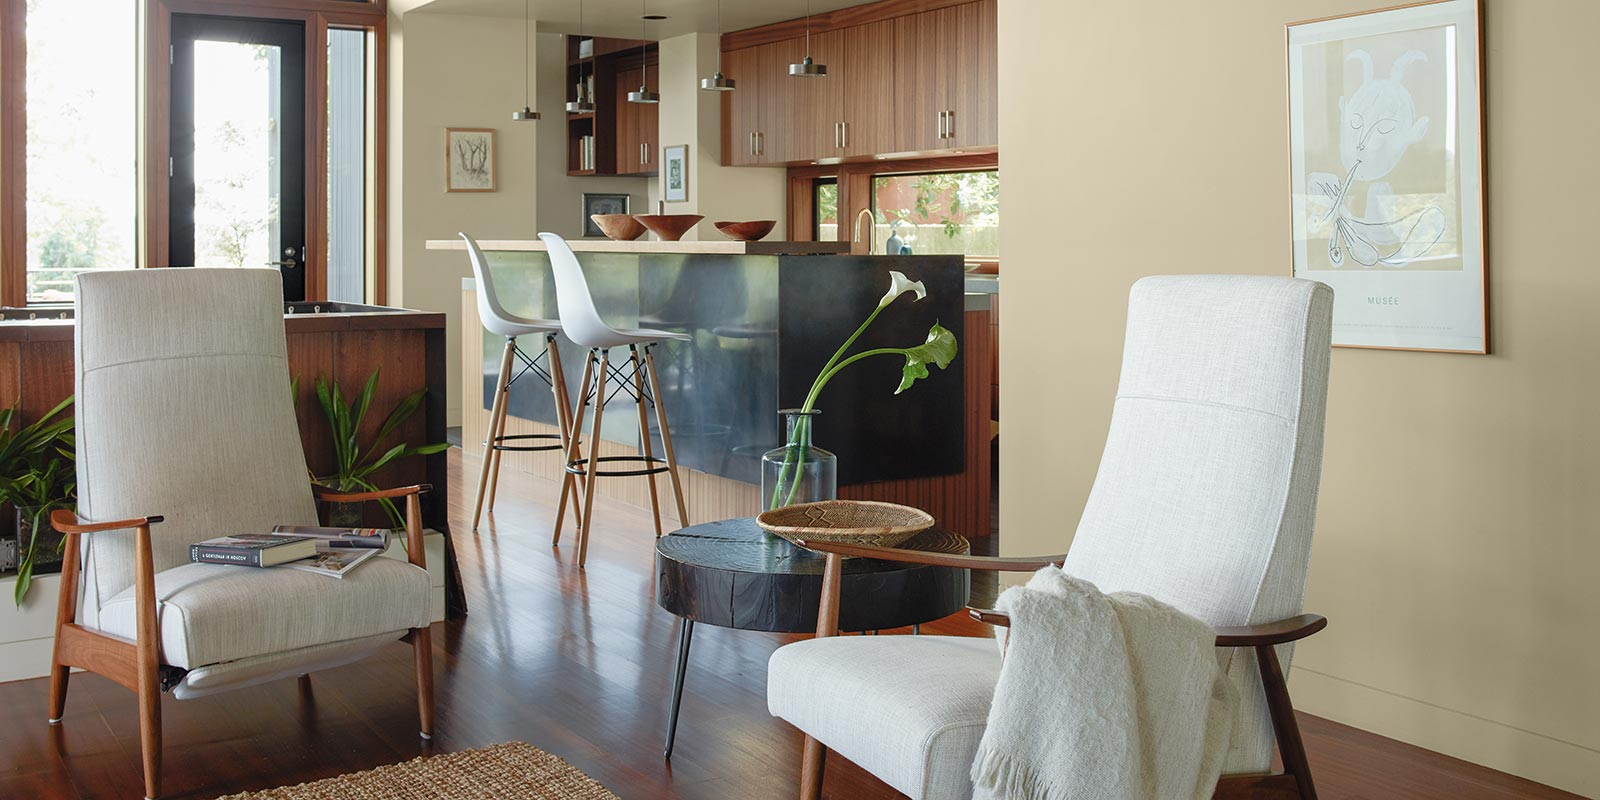 Benjamin Moore Living Room with Chairs